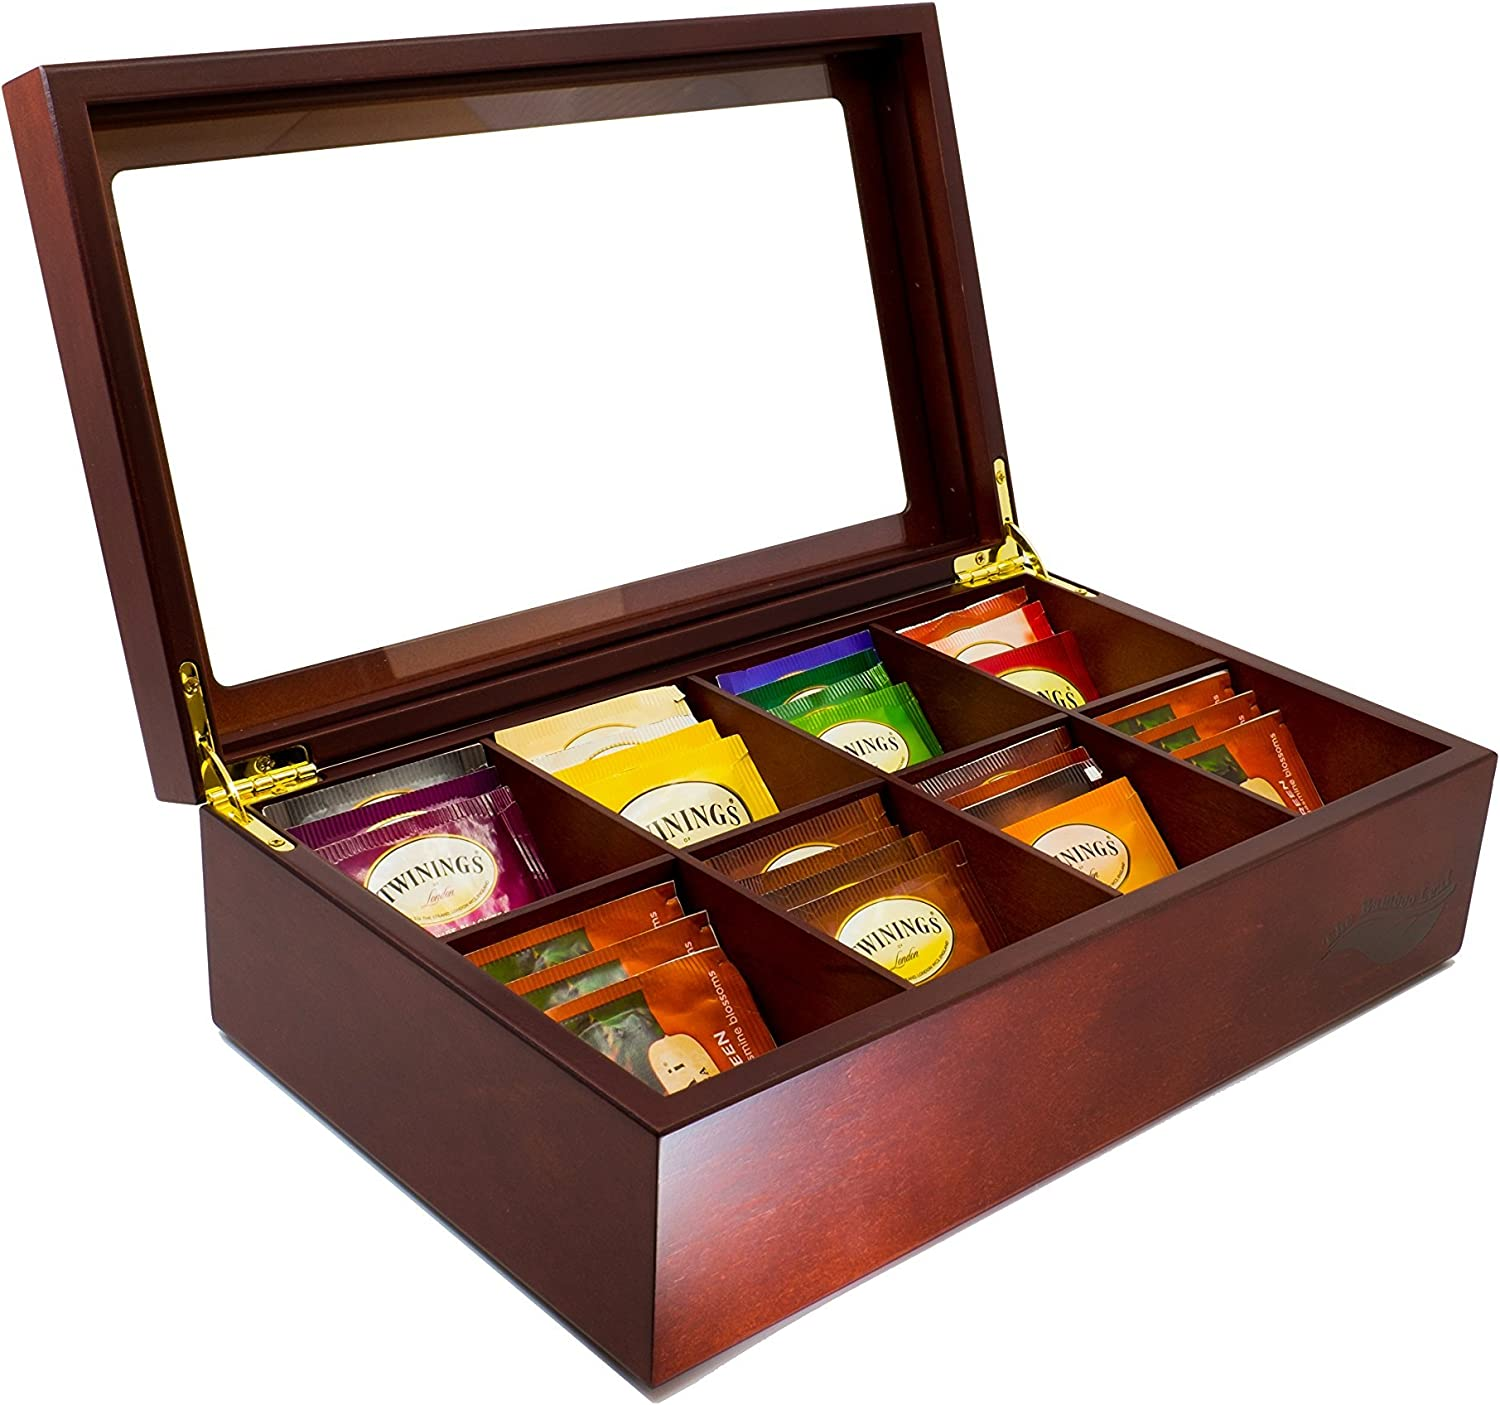 The Bamboo Leaf Wooden Tea Storage Chest Box With 8 Compartments And Glass Window Cherrywood Amazon Ca Home Kitchen